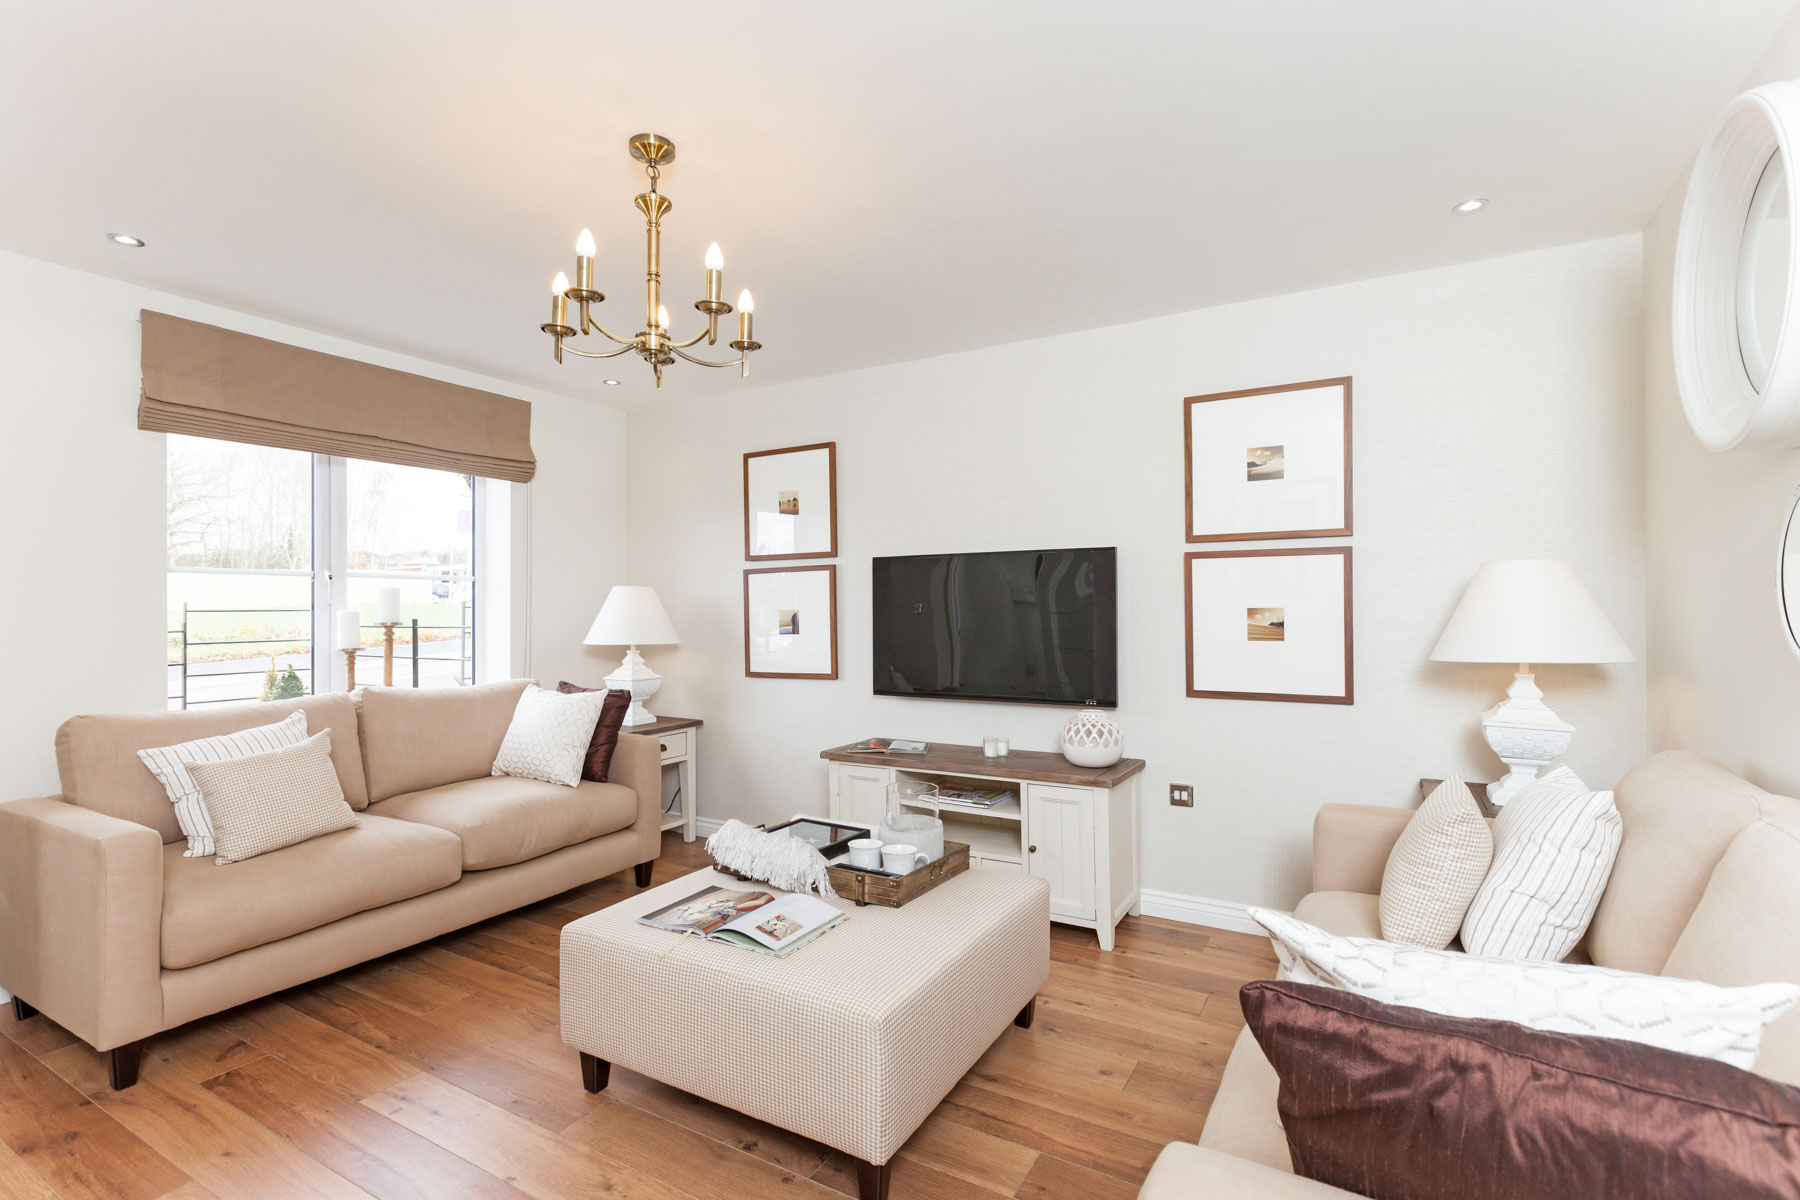 TW Exeter - Cranbrook - Gosford example living room